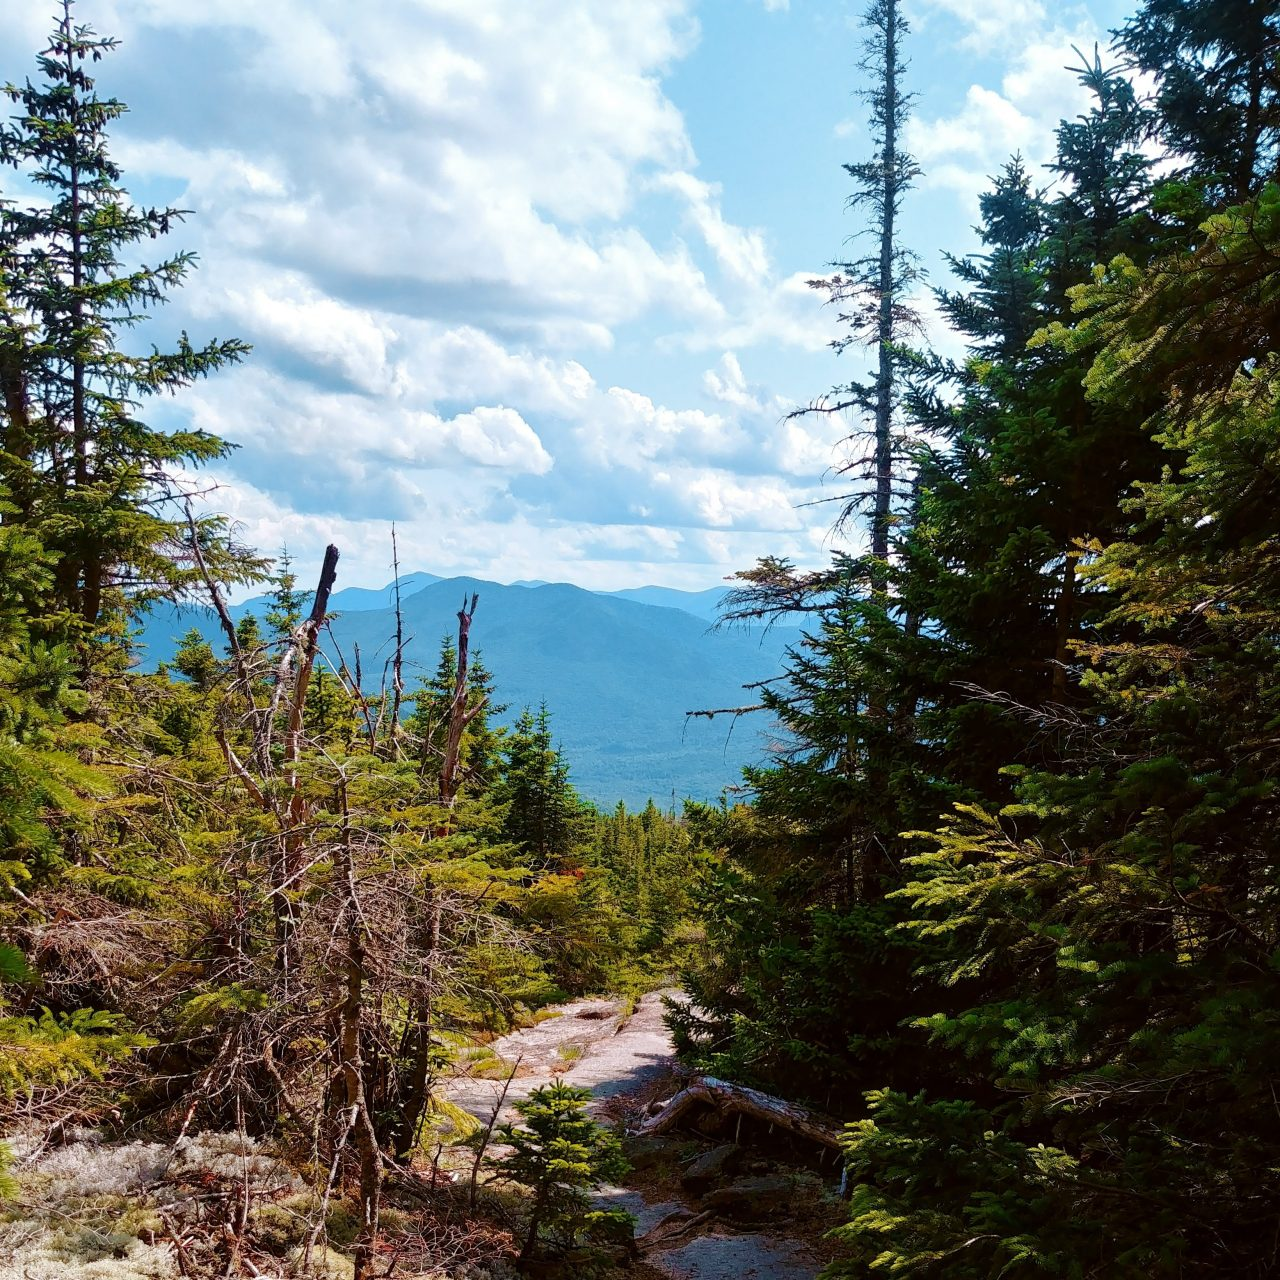 Top of mountain in New Hampshire